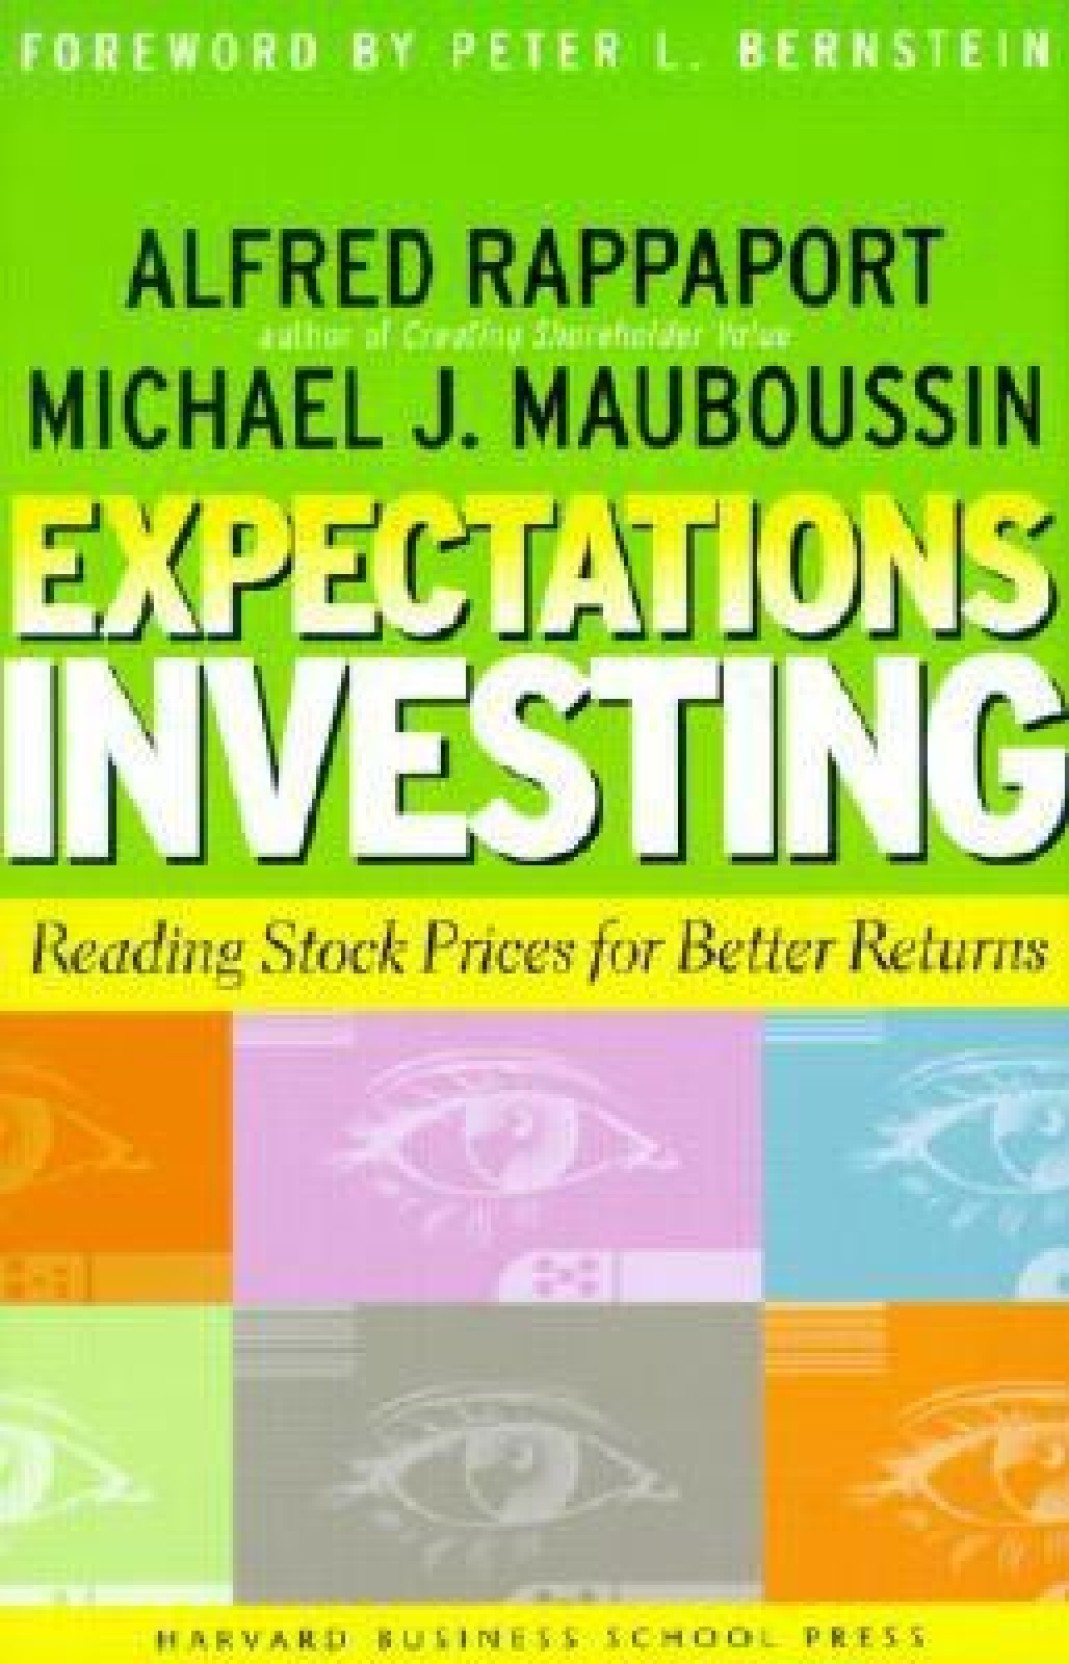 Expectations Investing: Reading Stock Prices for Better Returns (Hardcover)  1st Edition. Share